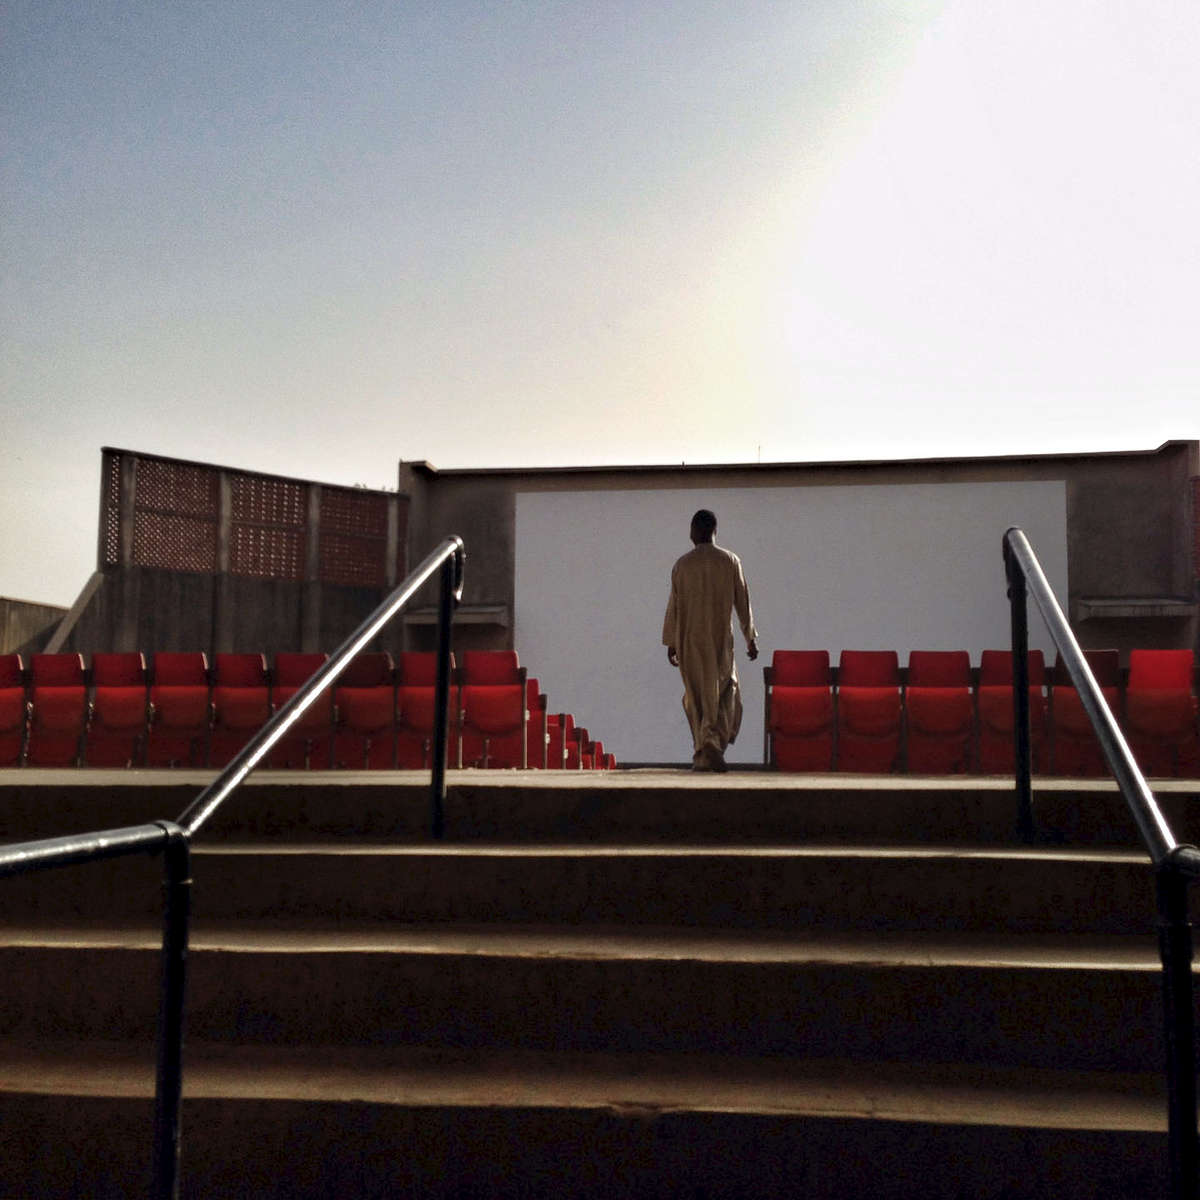 An open air movie theater in Kano, Northern Nigeria, that\'s long been out of use. March 2014.